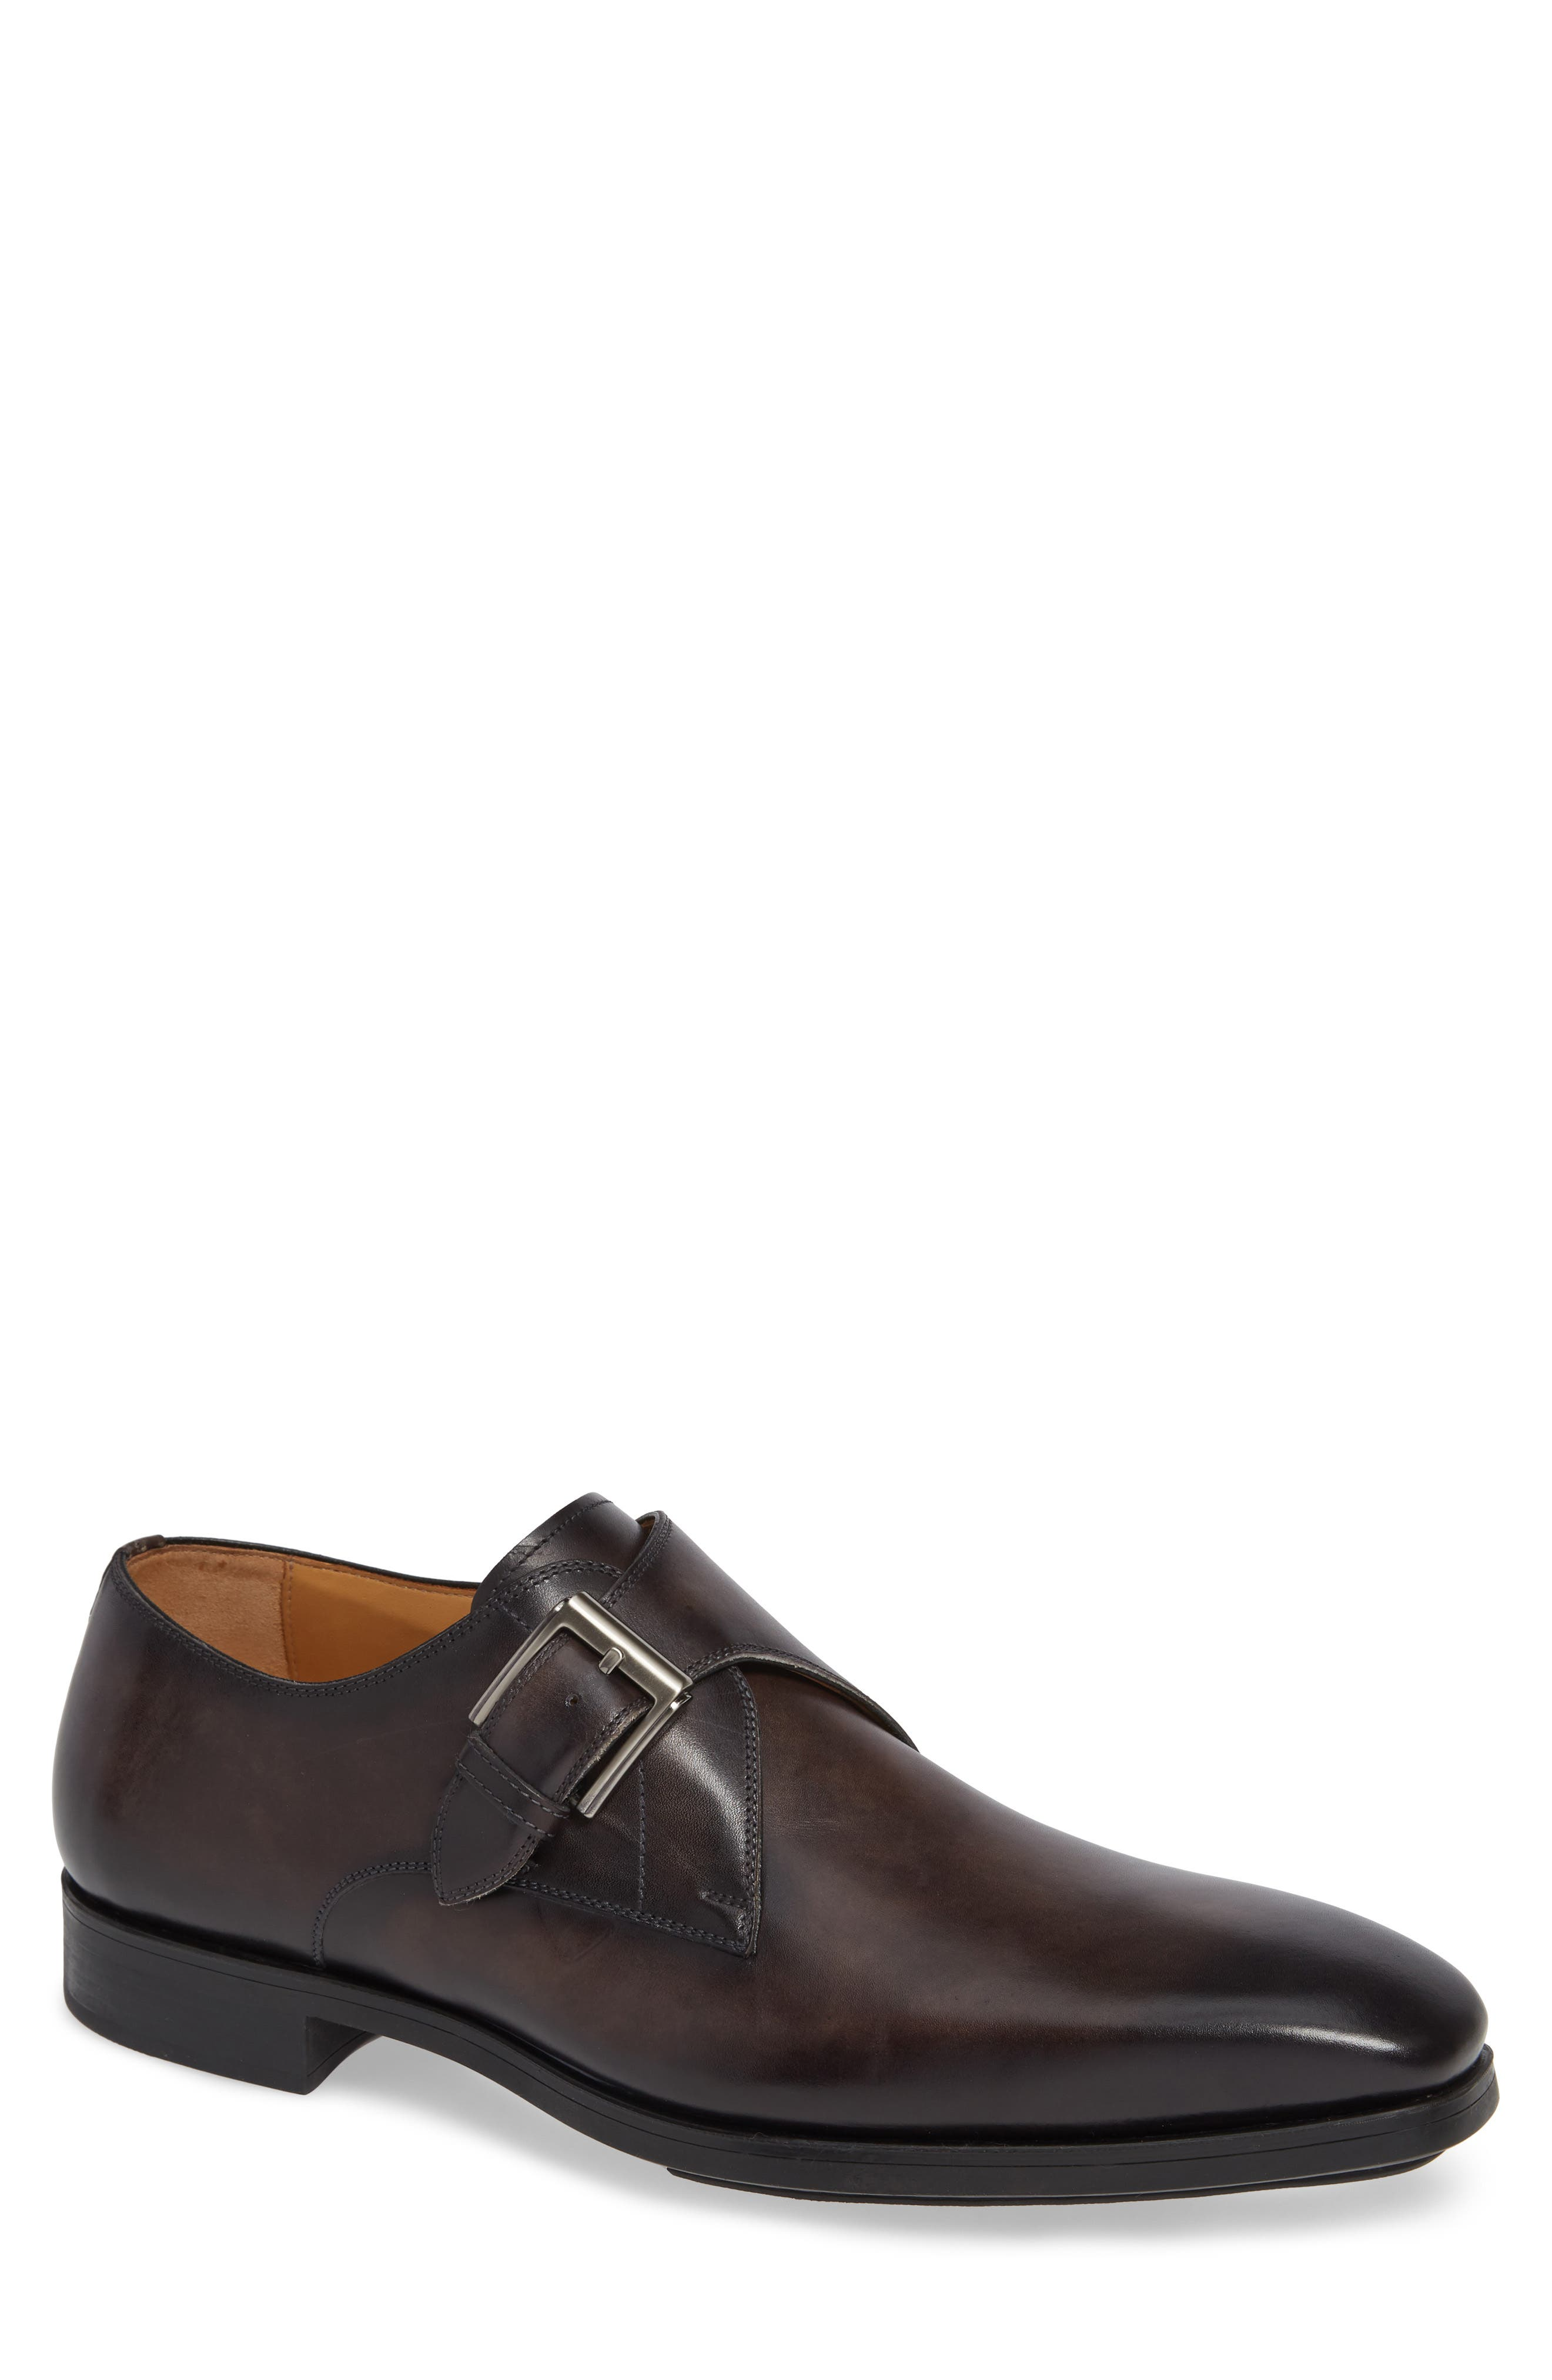 Roddy Monk Strap Shoe,                             Main thumbnail 1, color,                             GREY LEATHER